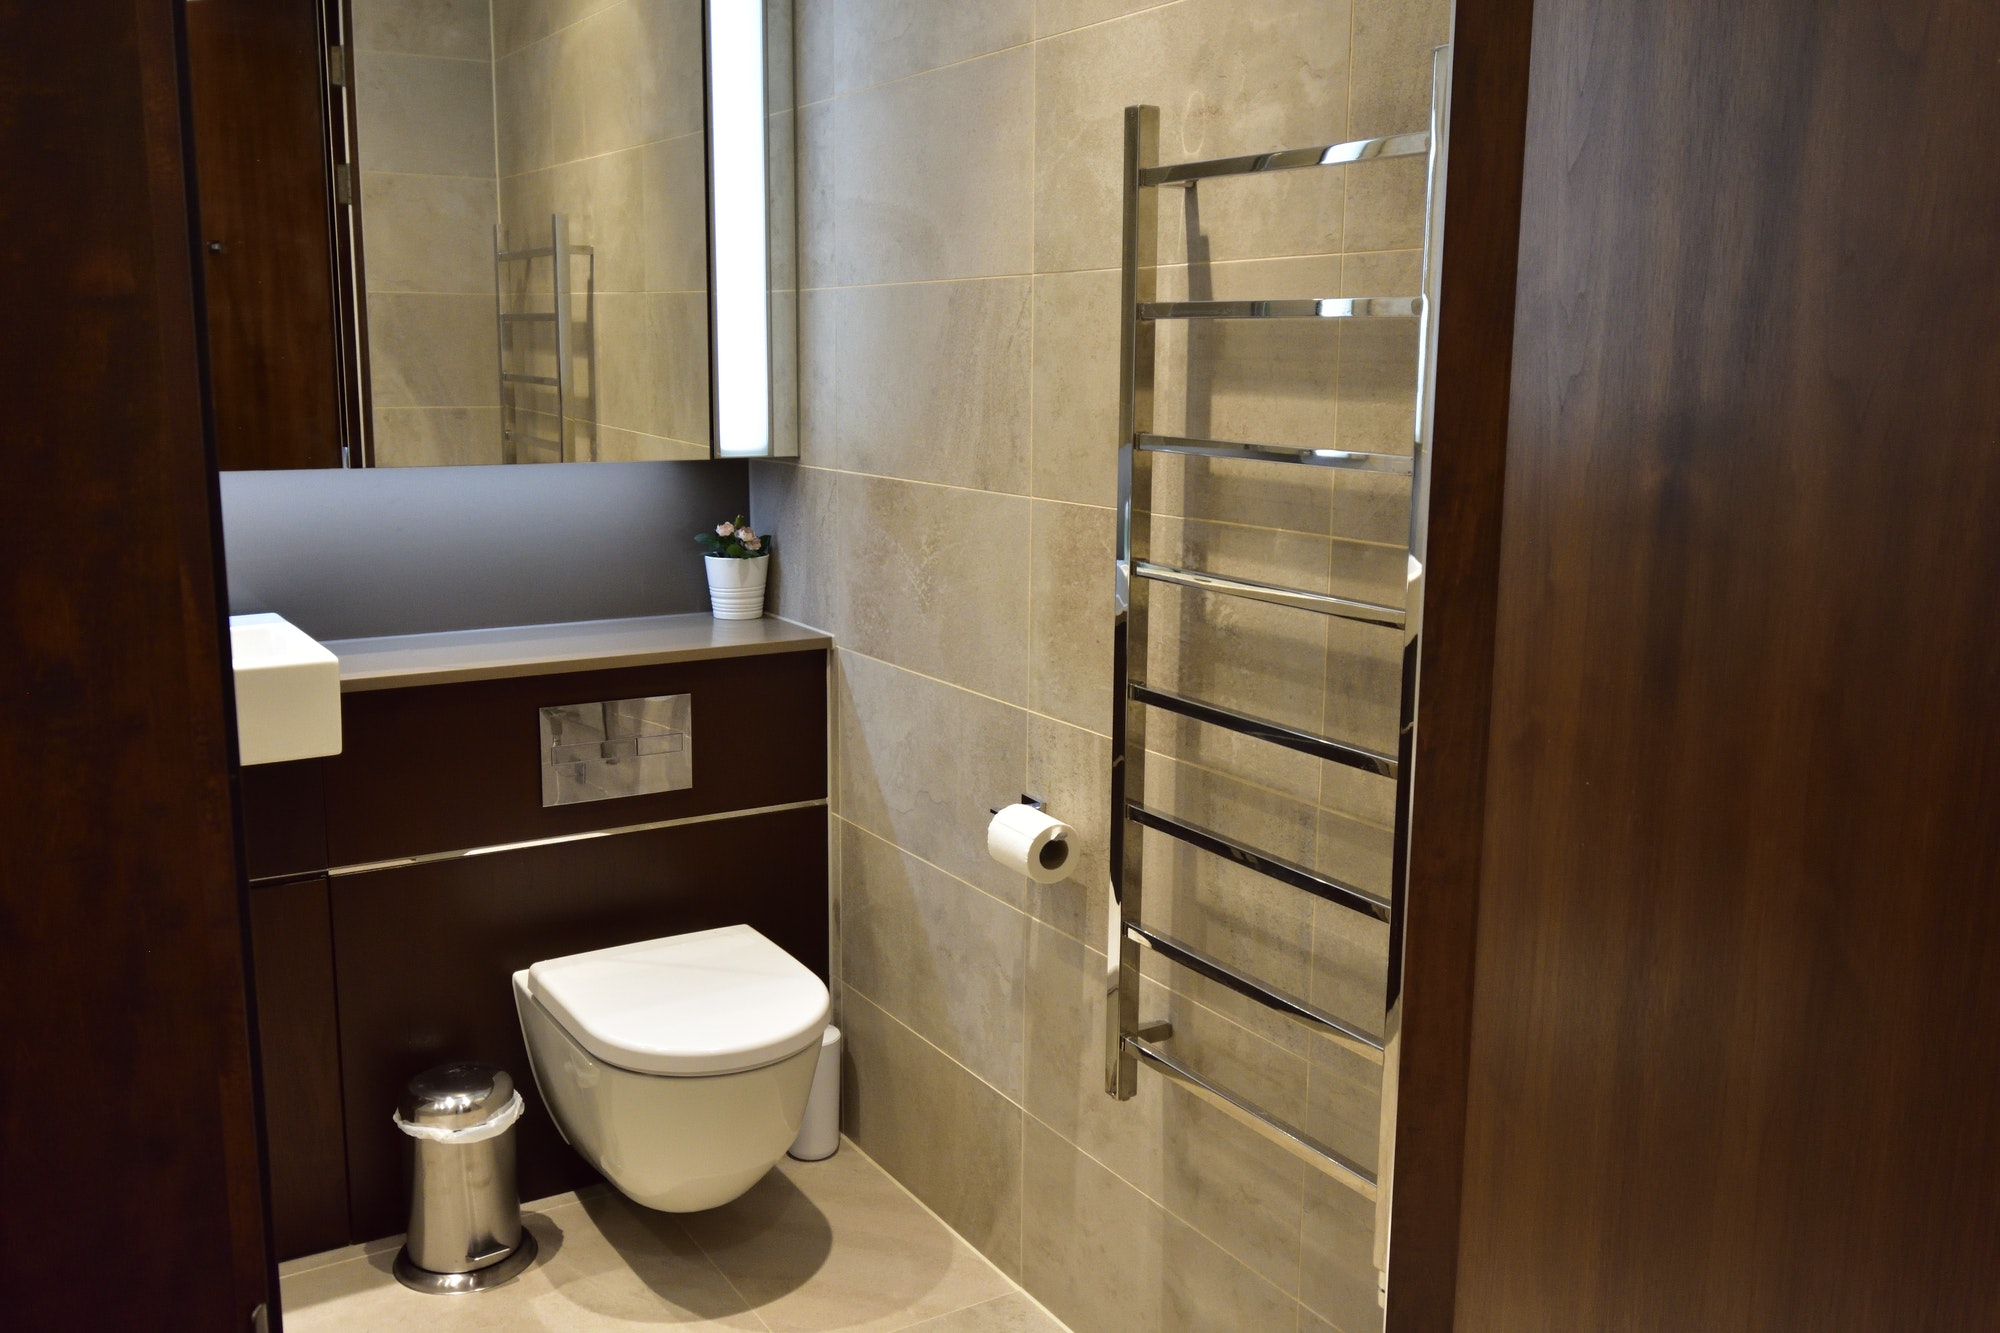 A bathroom in the apartment